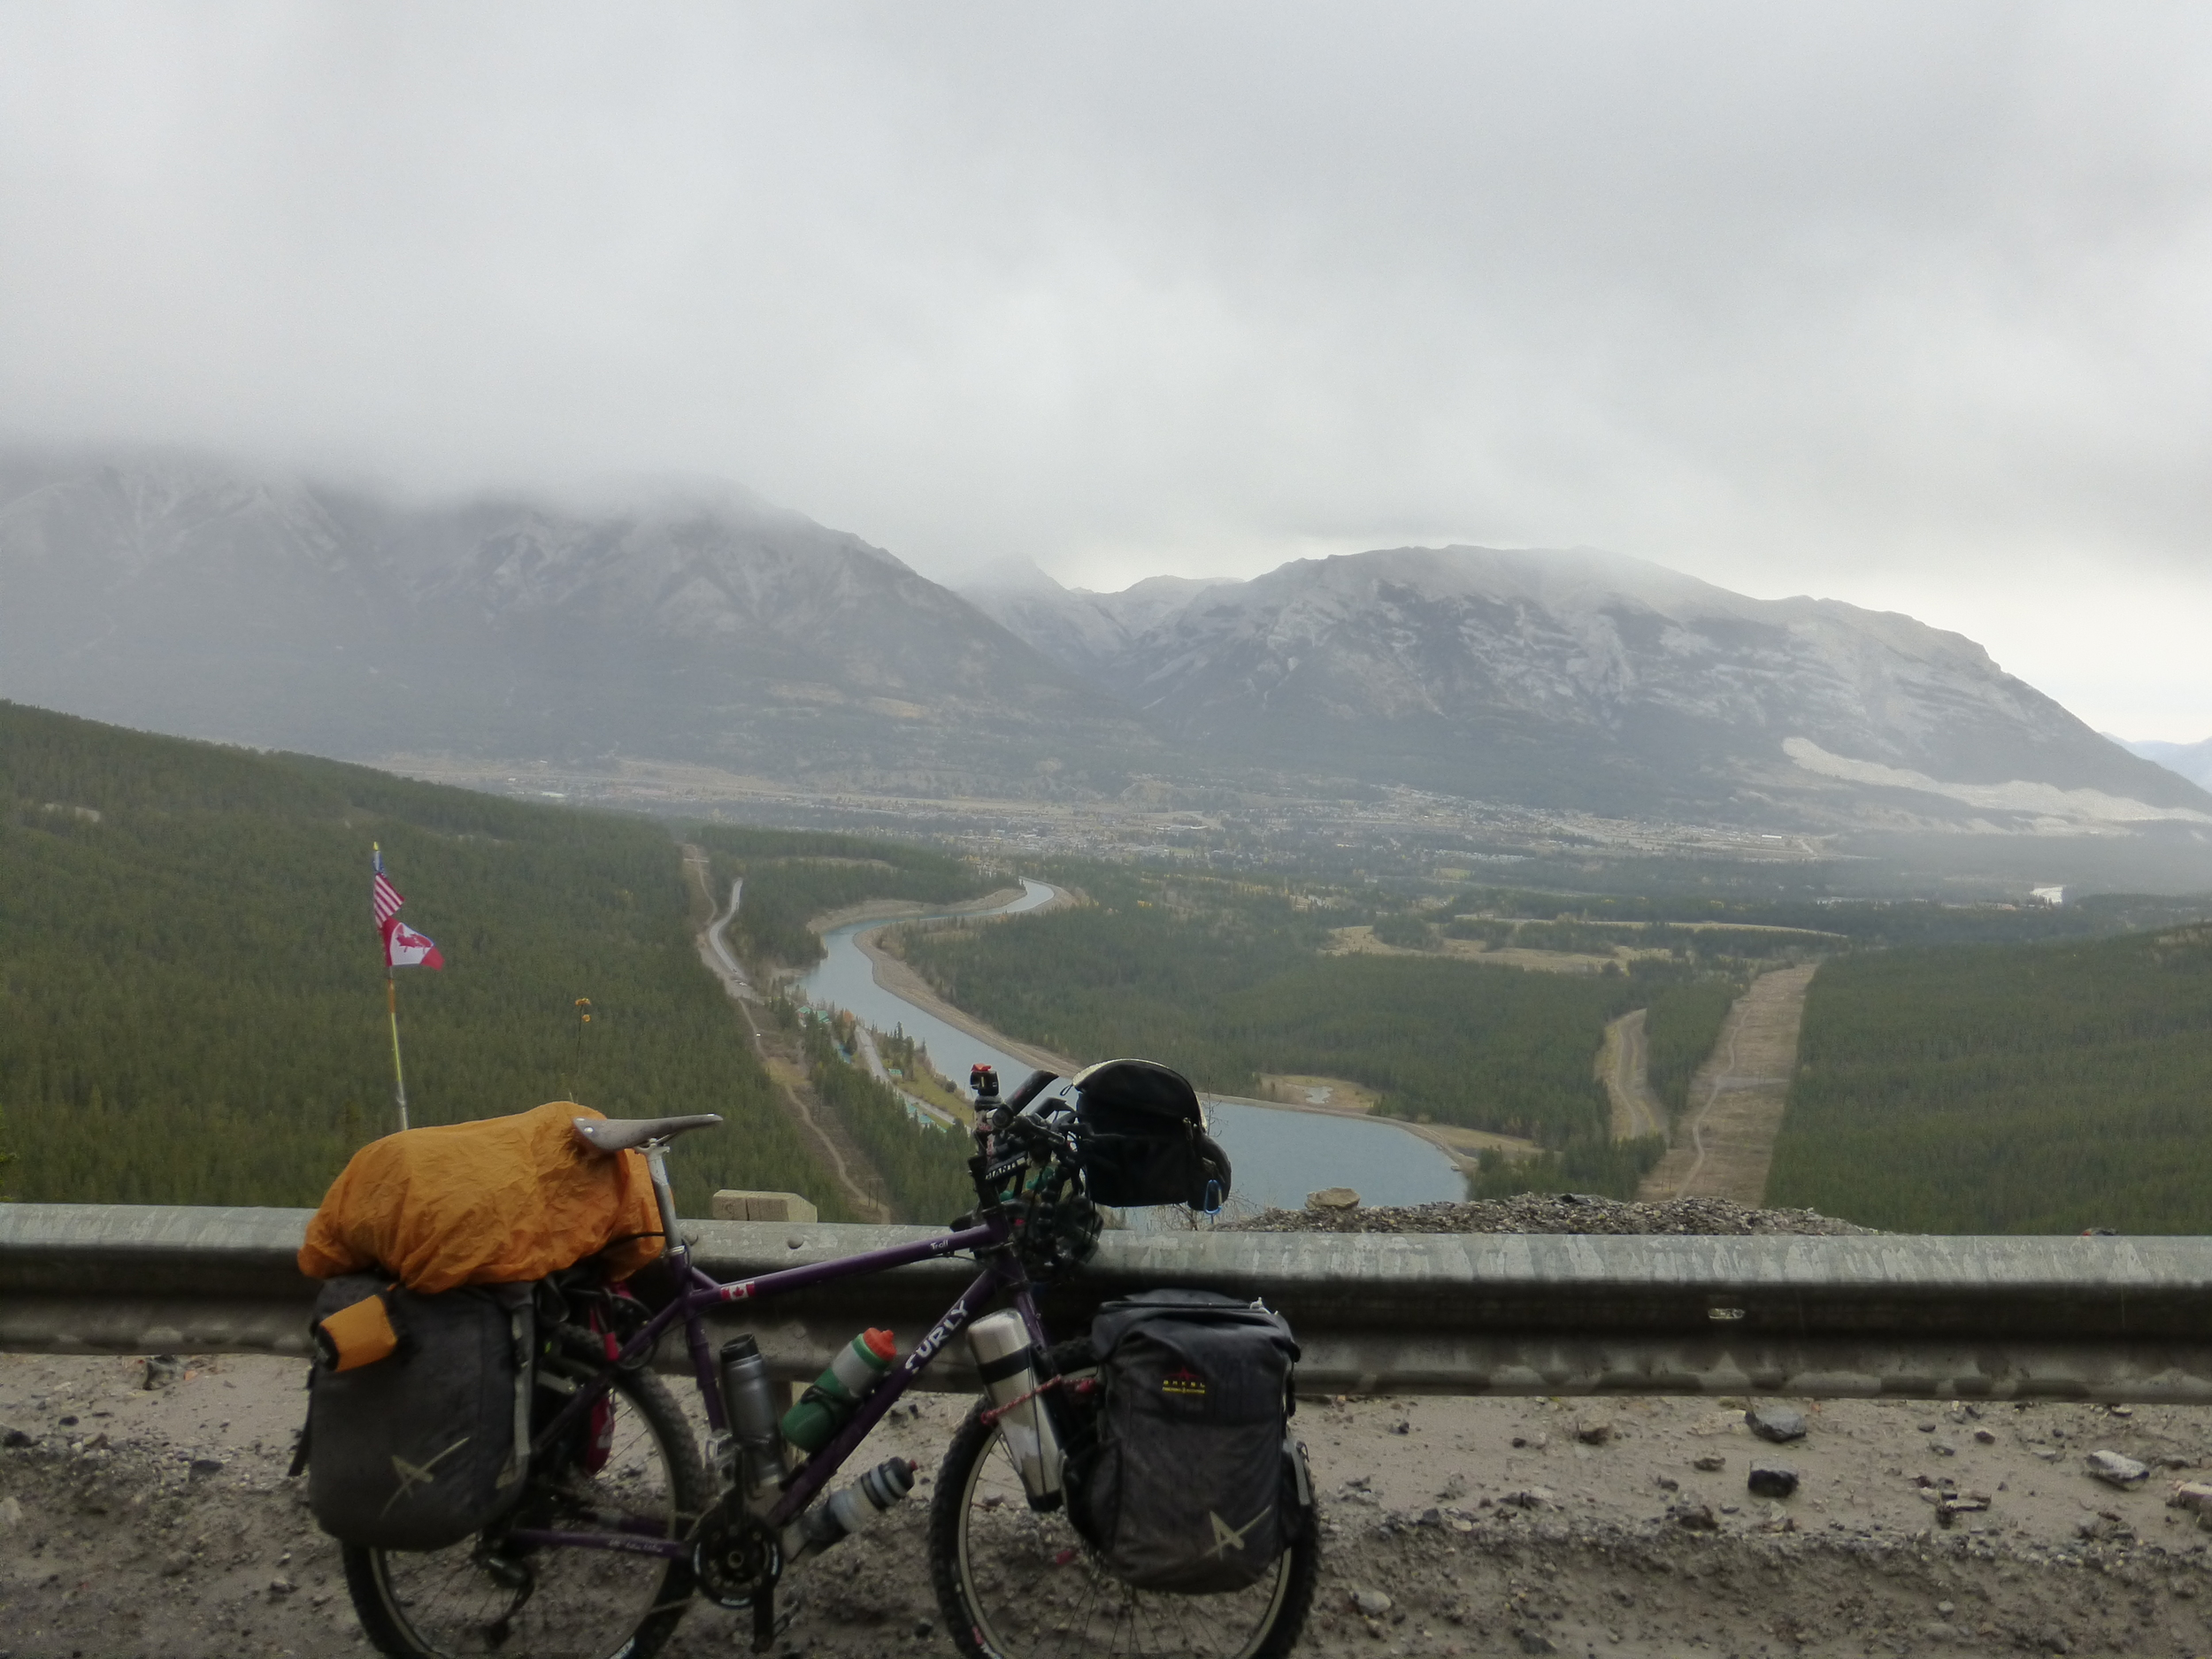 Deadhorse (the bike) overloaded with 10 days supply of food and a lot of stuff I don't really need! (overlooking Canmore)